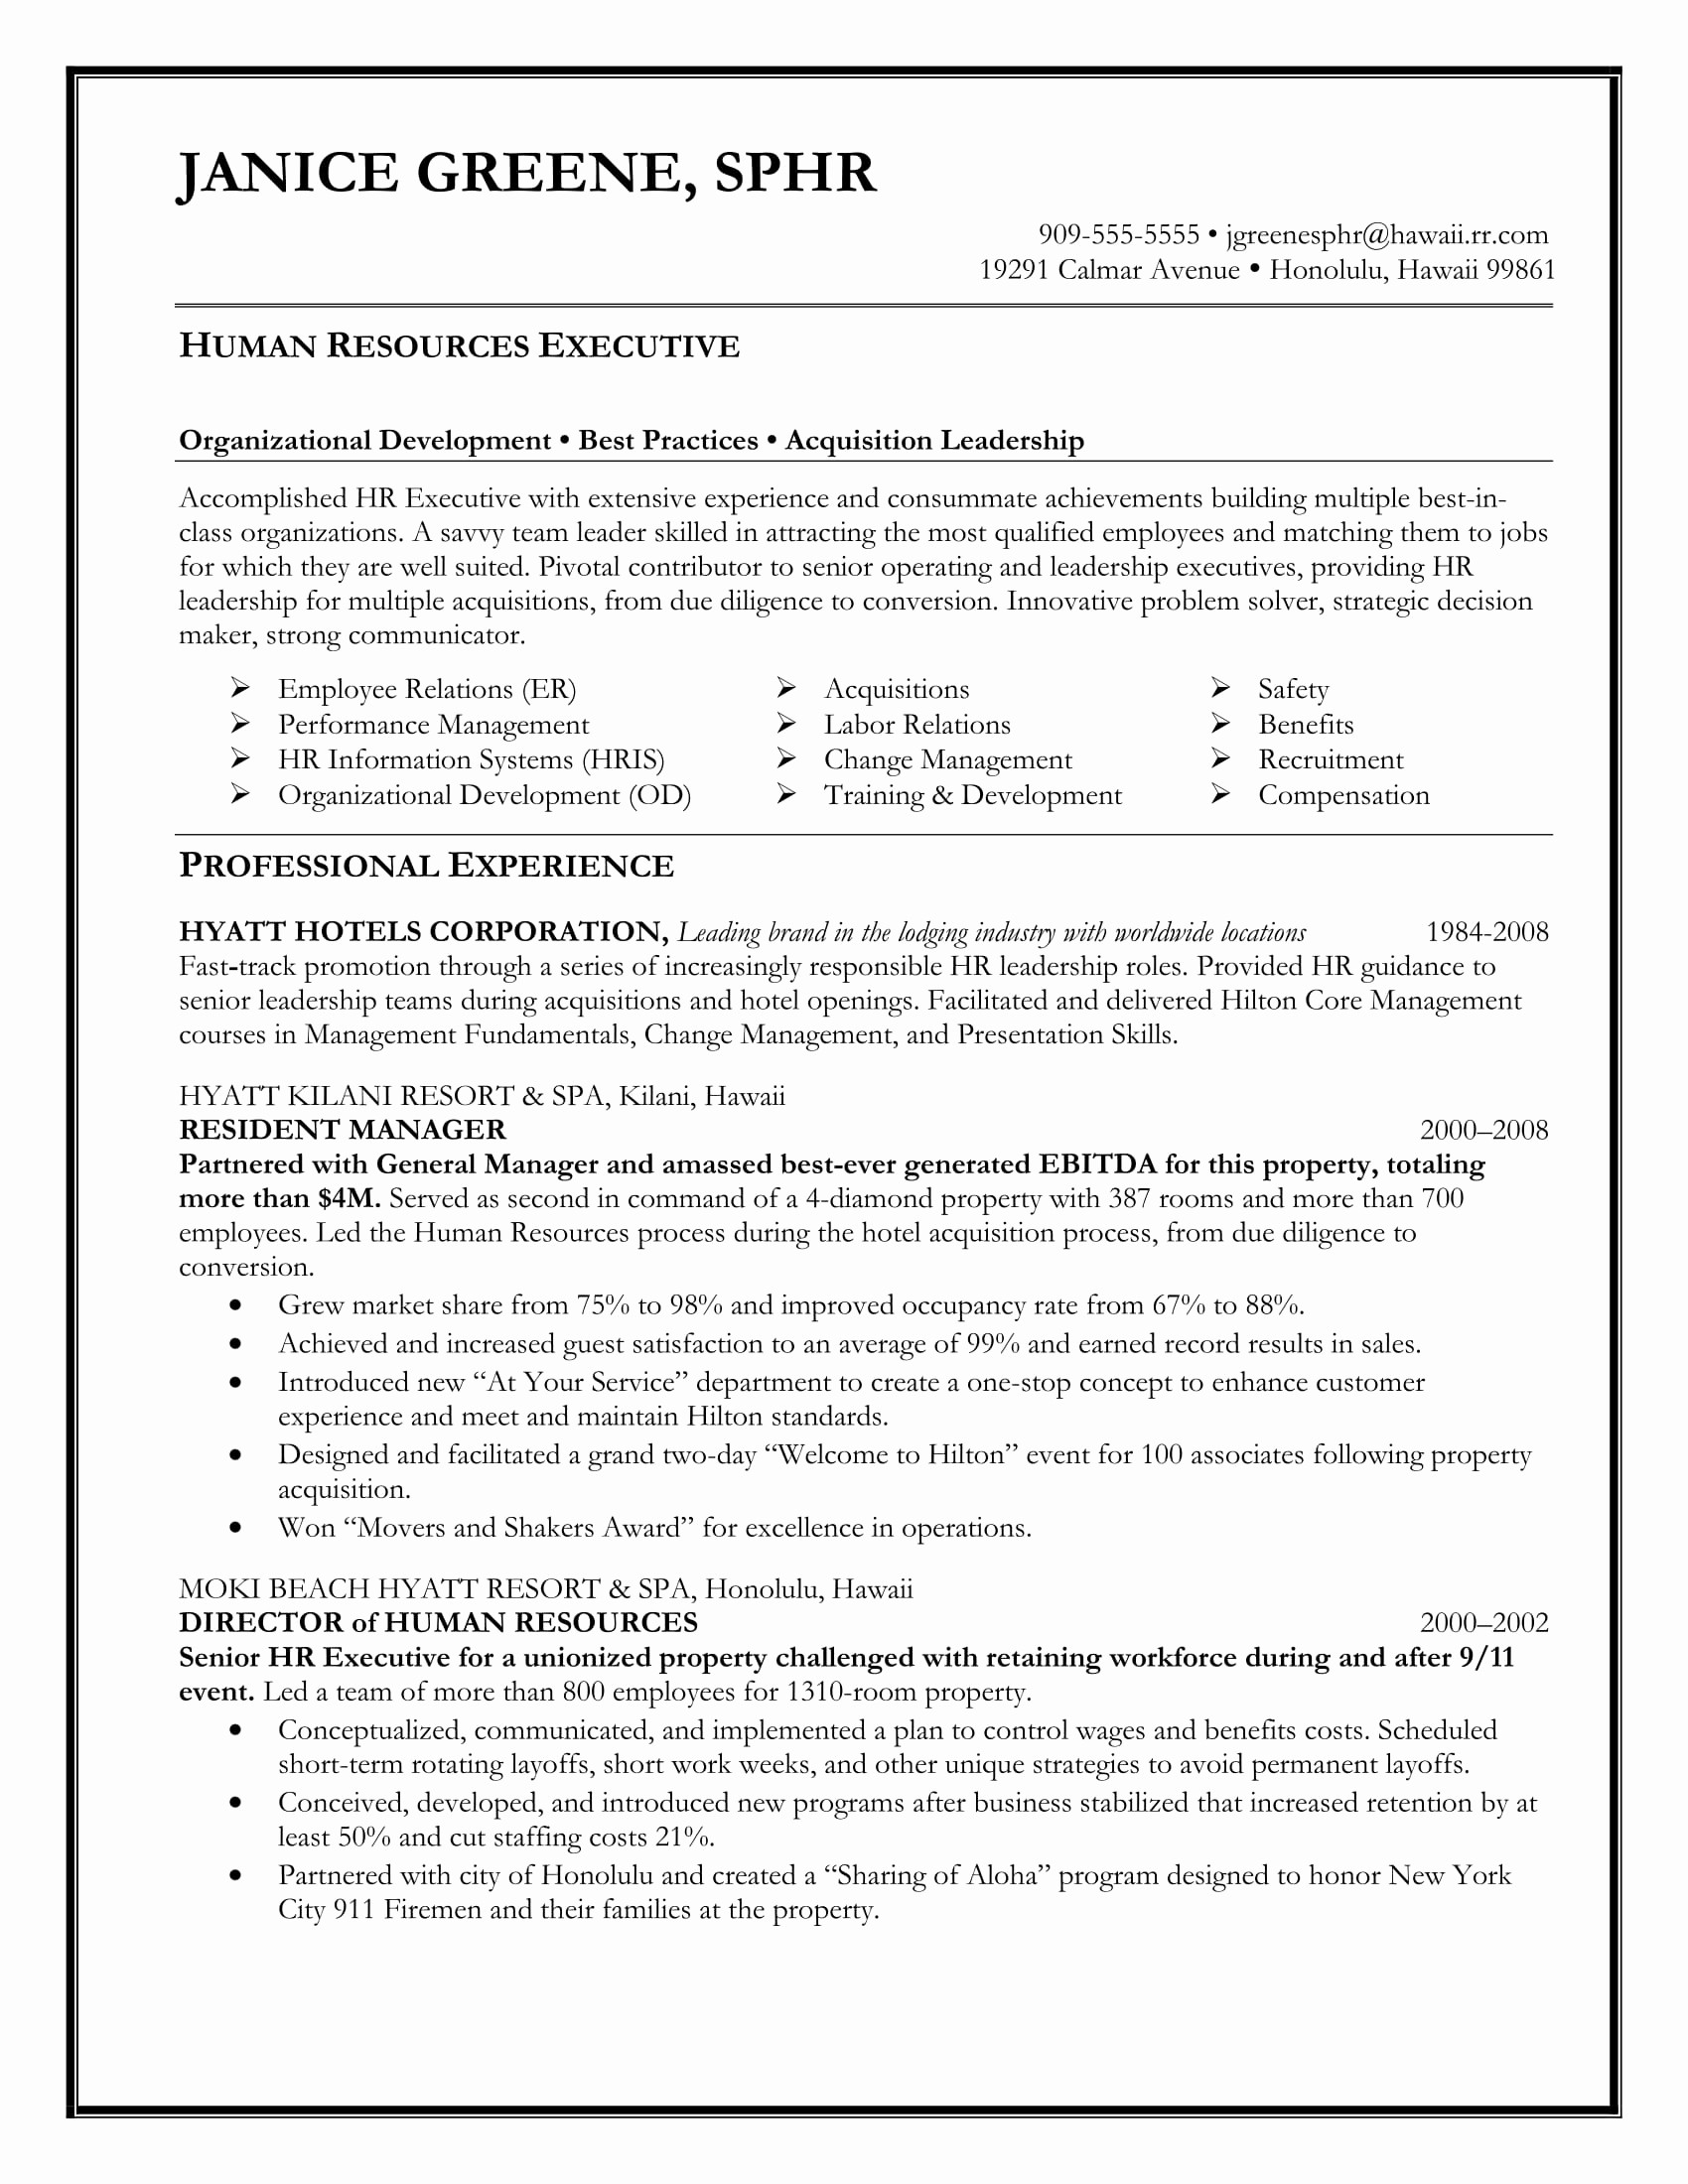 Cover Letter Template for Human Resources - Human Resource Documents Templates Beautiful Hr Resume Examples